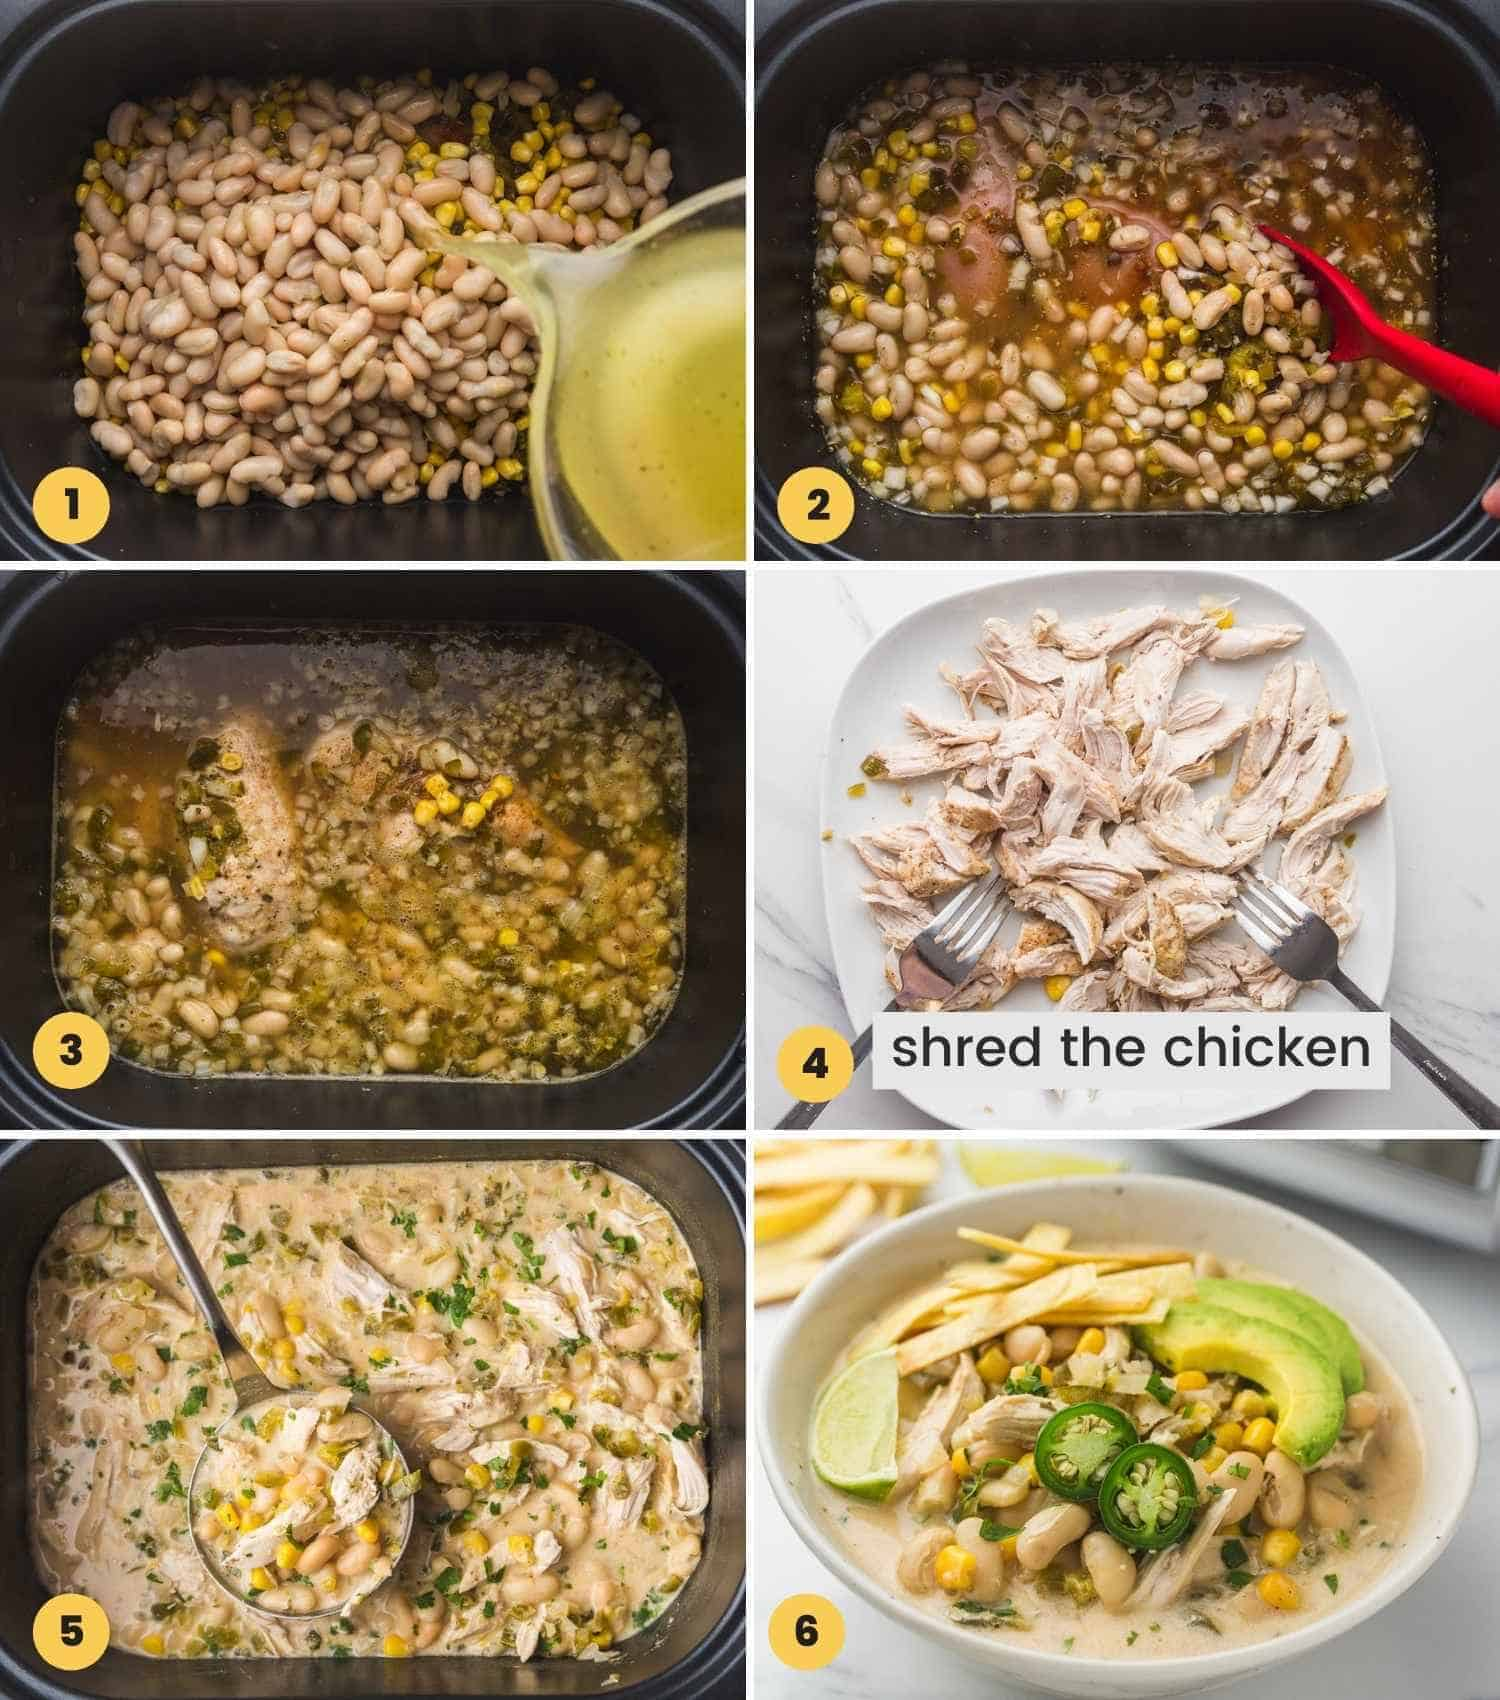 A collage with 6 images on how to make Creamy Crockpot White Chicken Chili